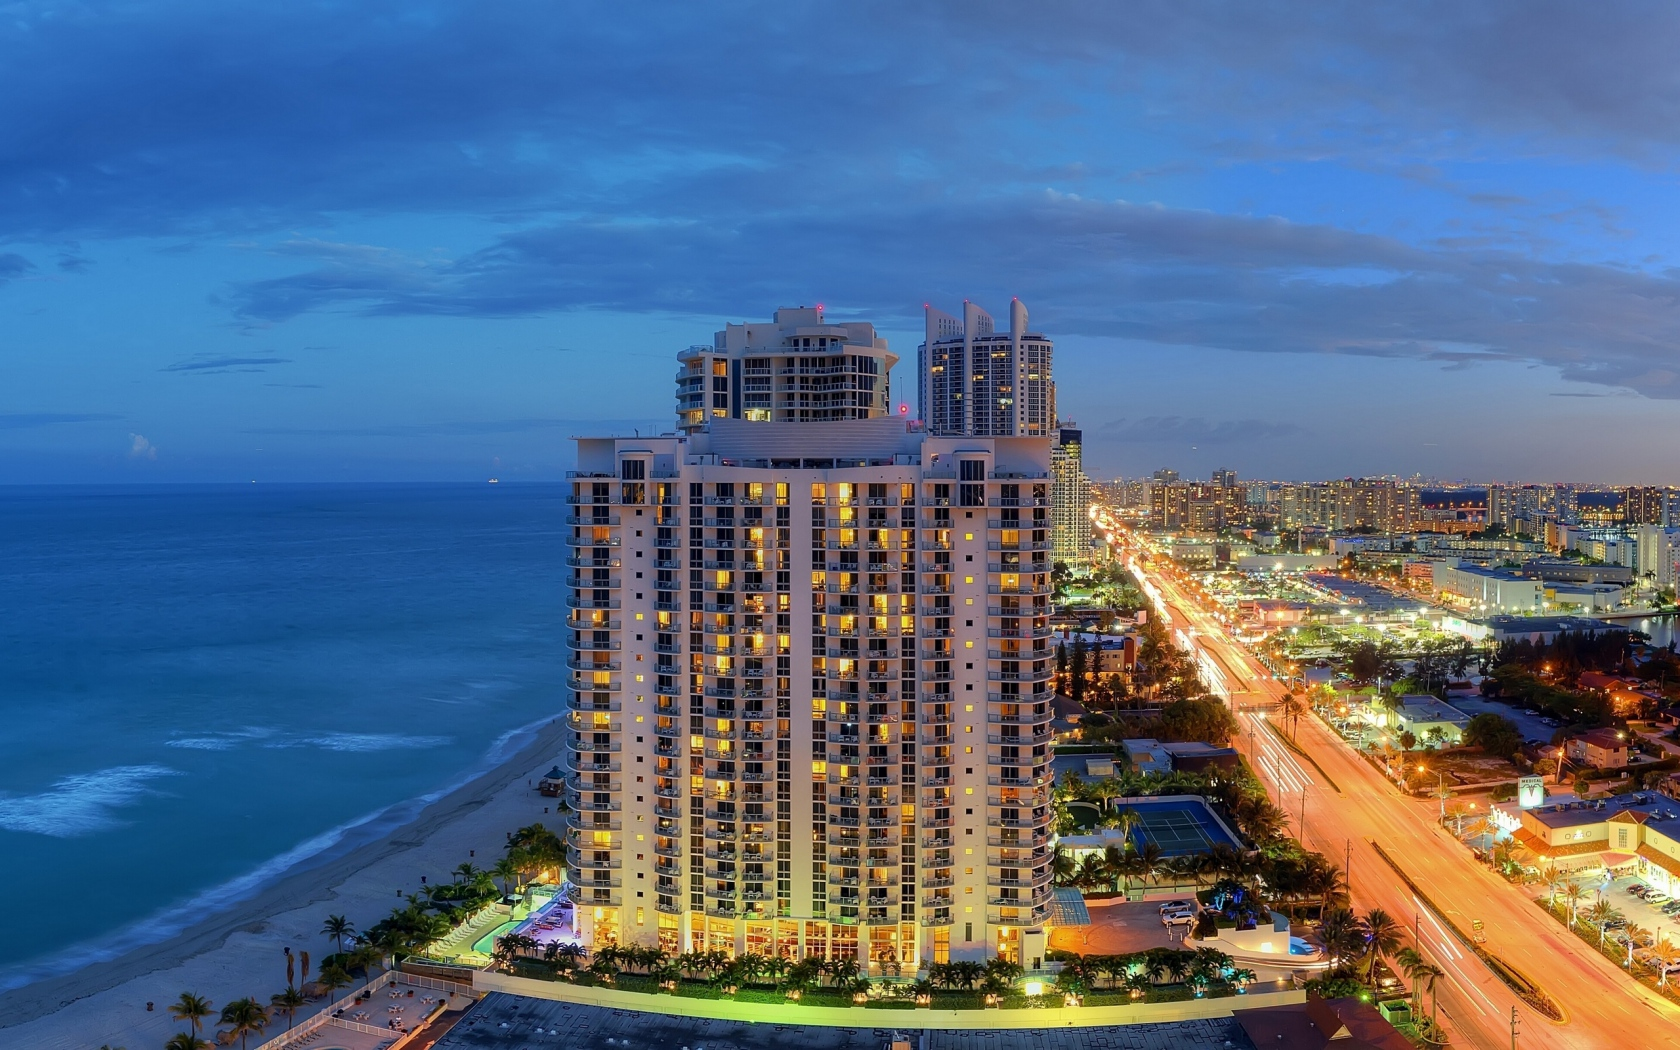 hotels-and-property-buildings-in-isles-beach-miami-florida